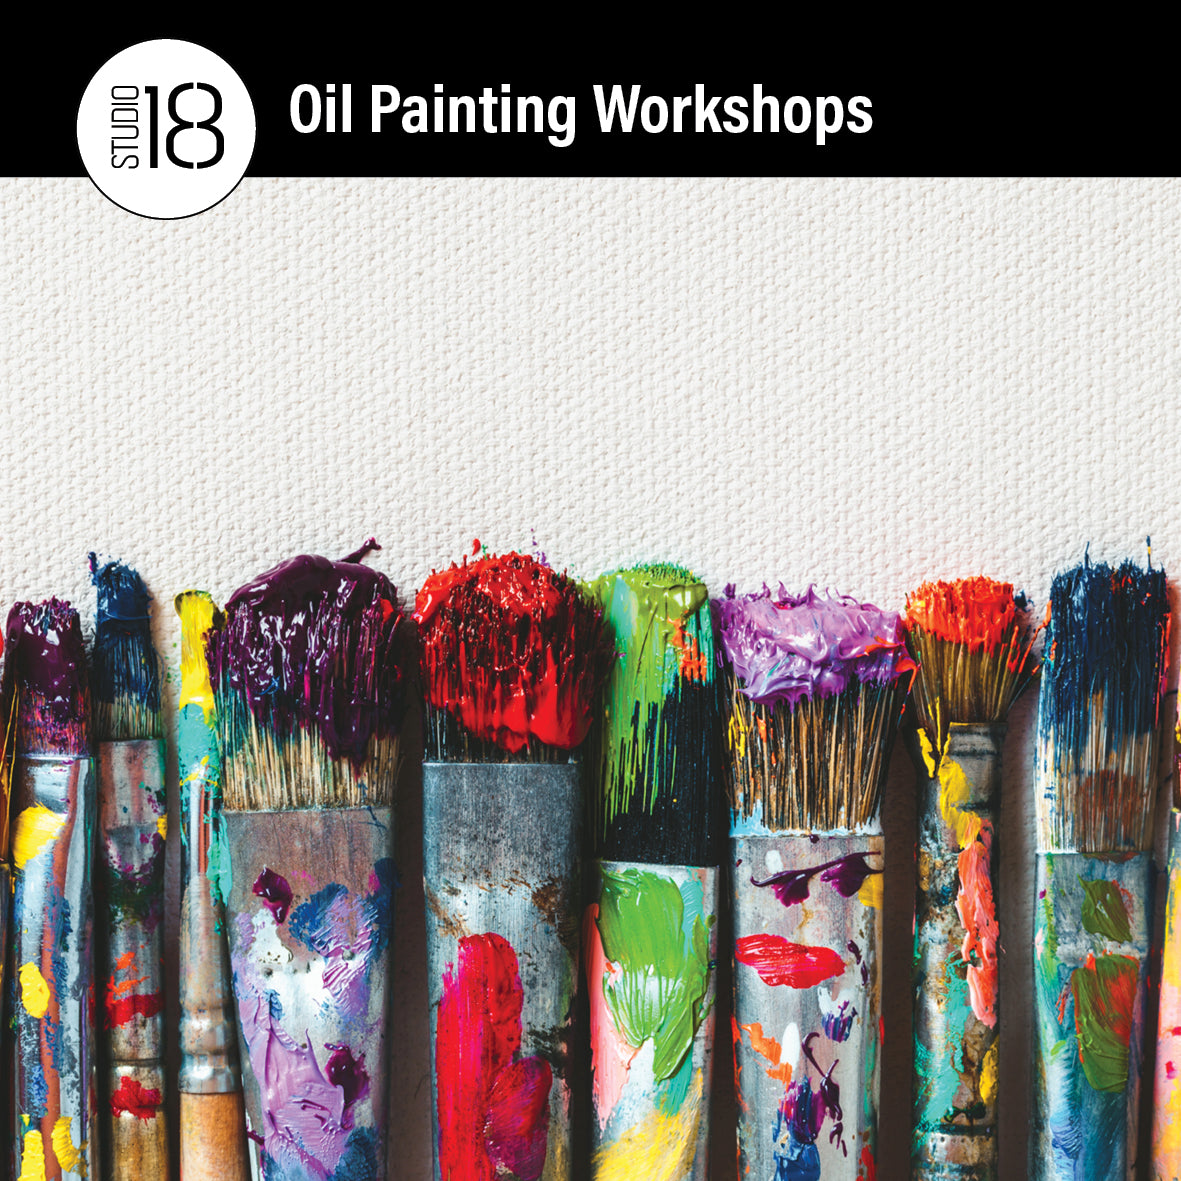 Oil Painting Workshops